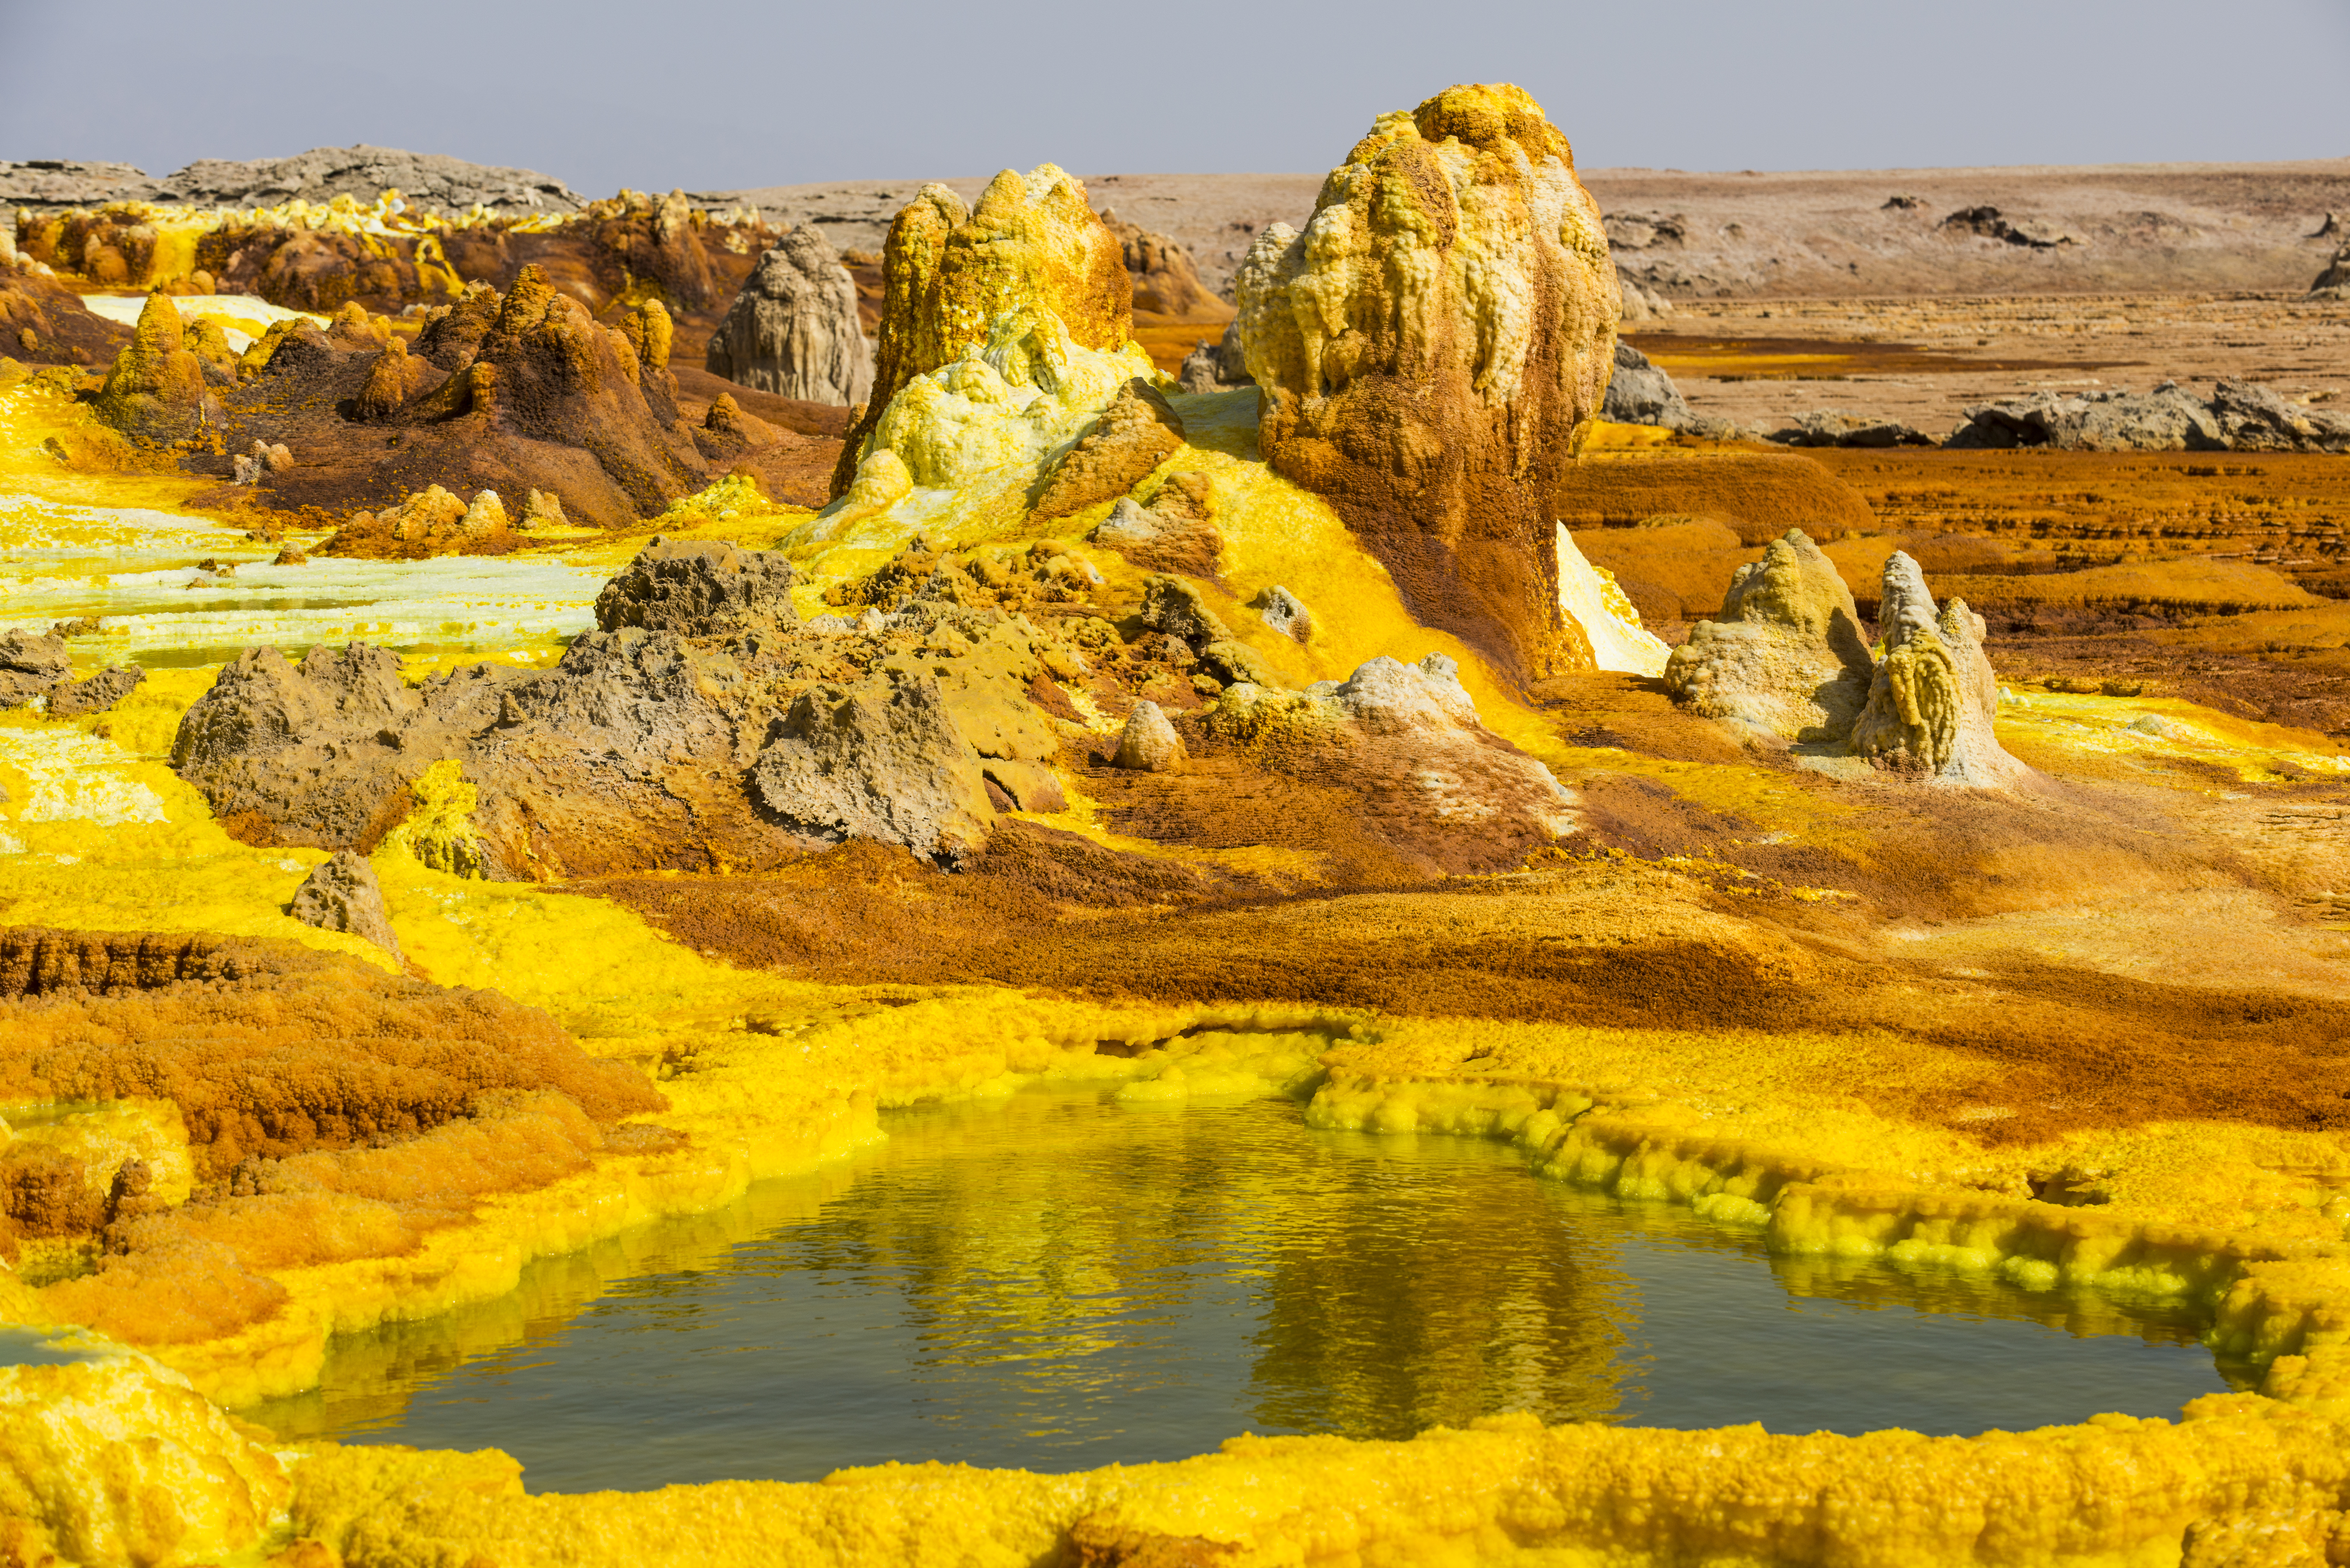 Colourful spings of acid in Dallol, hottest place on earth, Danakil depression, Ethiopia